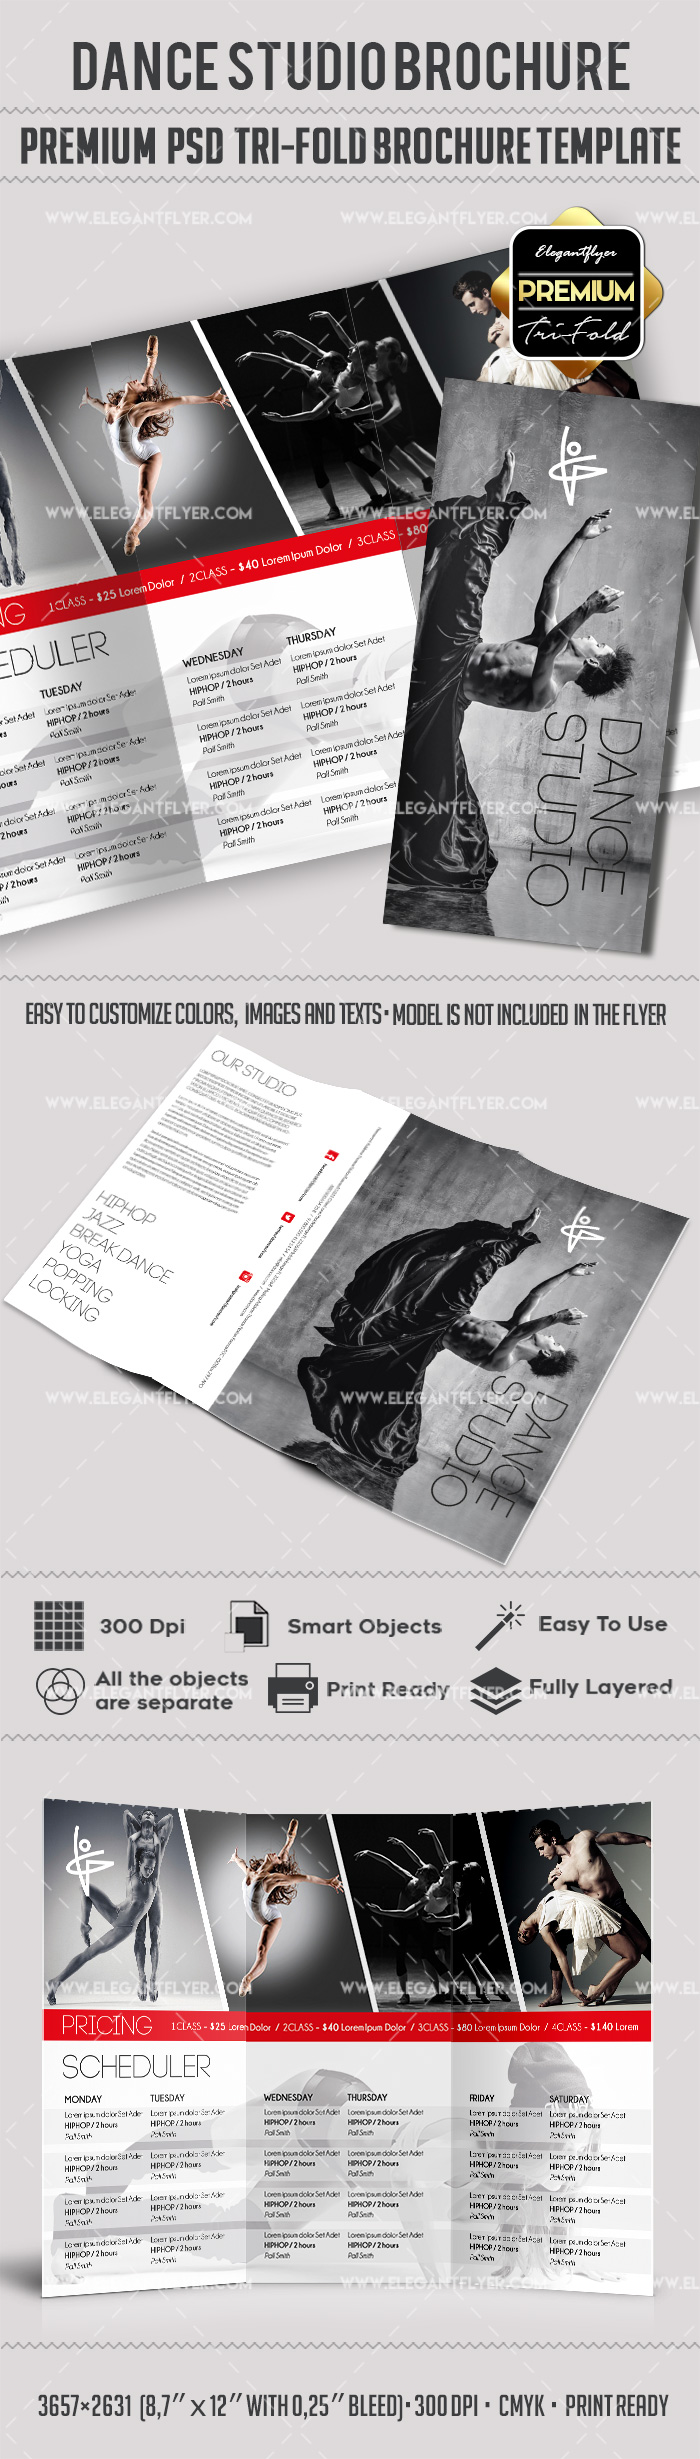 The Dancer Studio – Premium Tri-Fold PSD Brochure Template